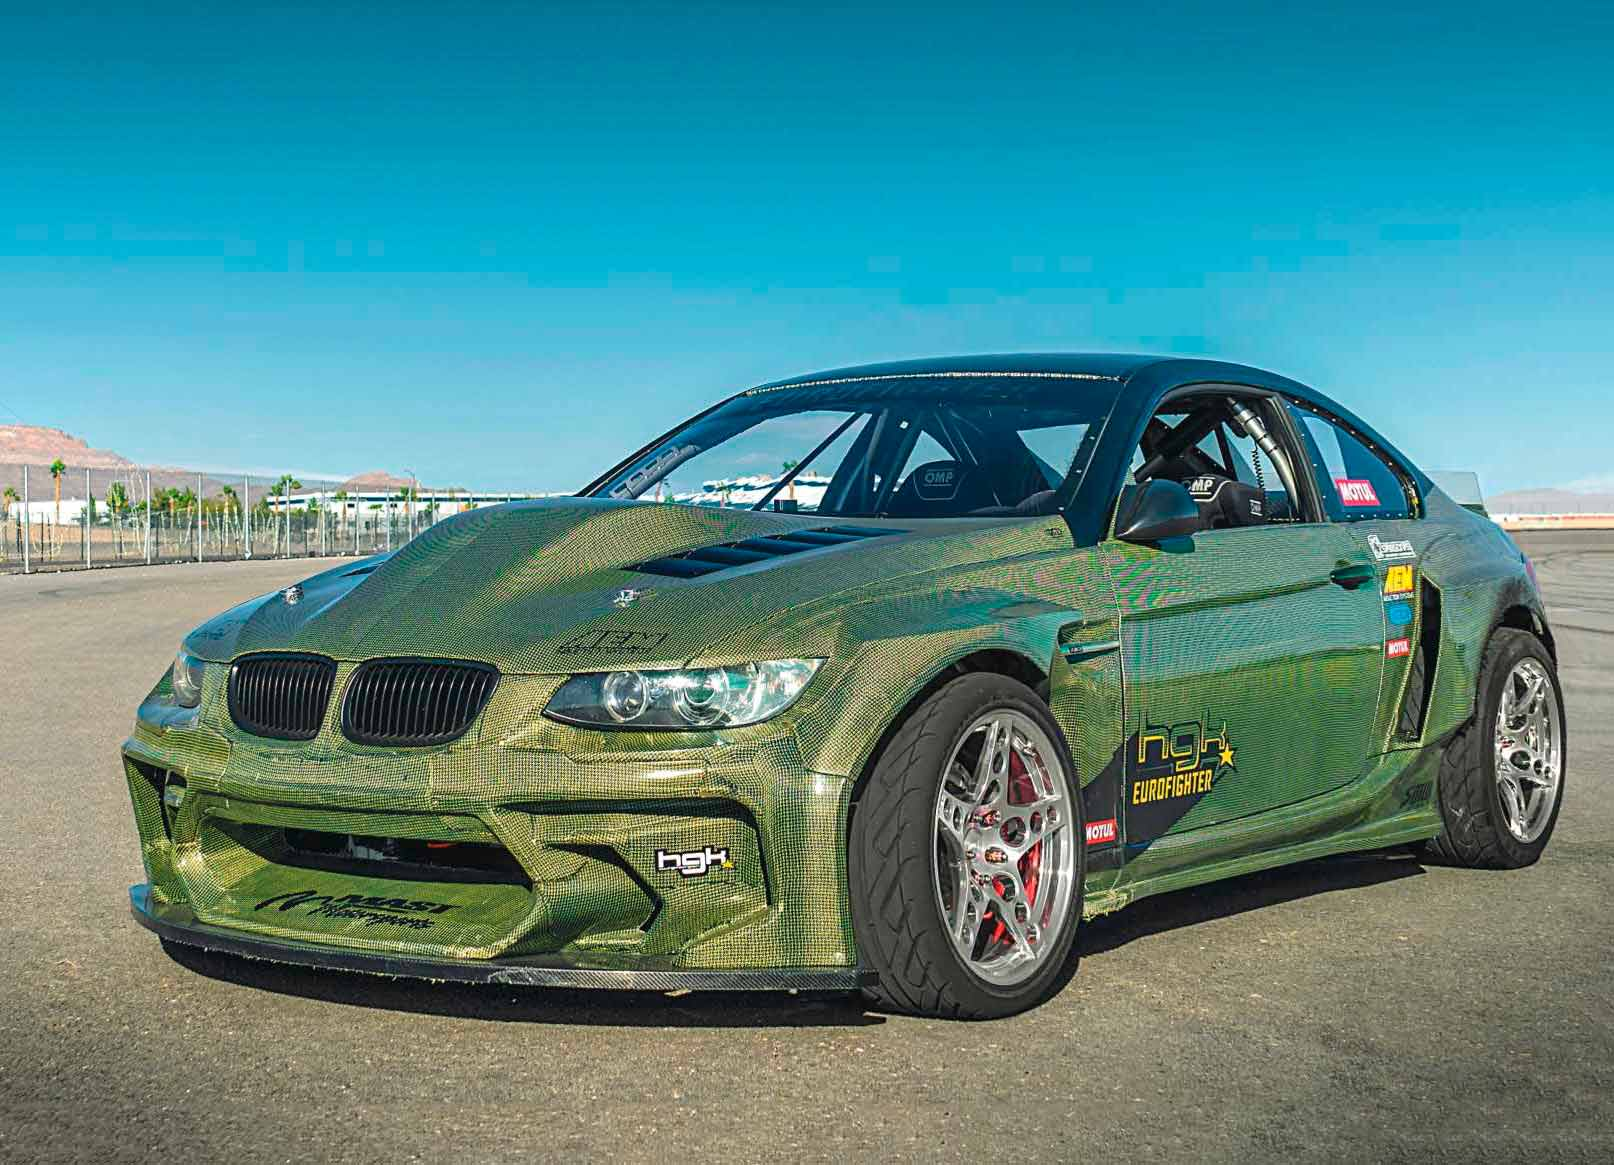 900hp 7 0 Litre V8 Gm Ls7 Engined Carbon Kevlar Bmw E92 Hgk Racing S Eurofighter Drive My Blogs Drive